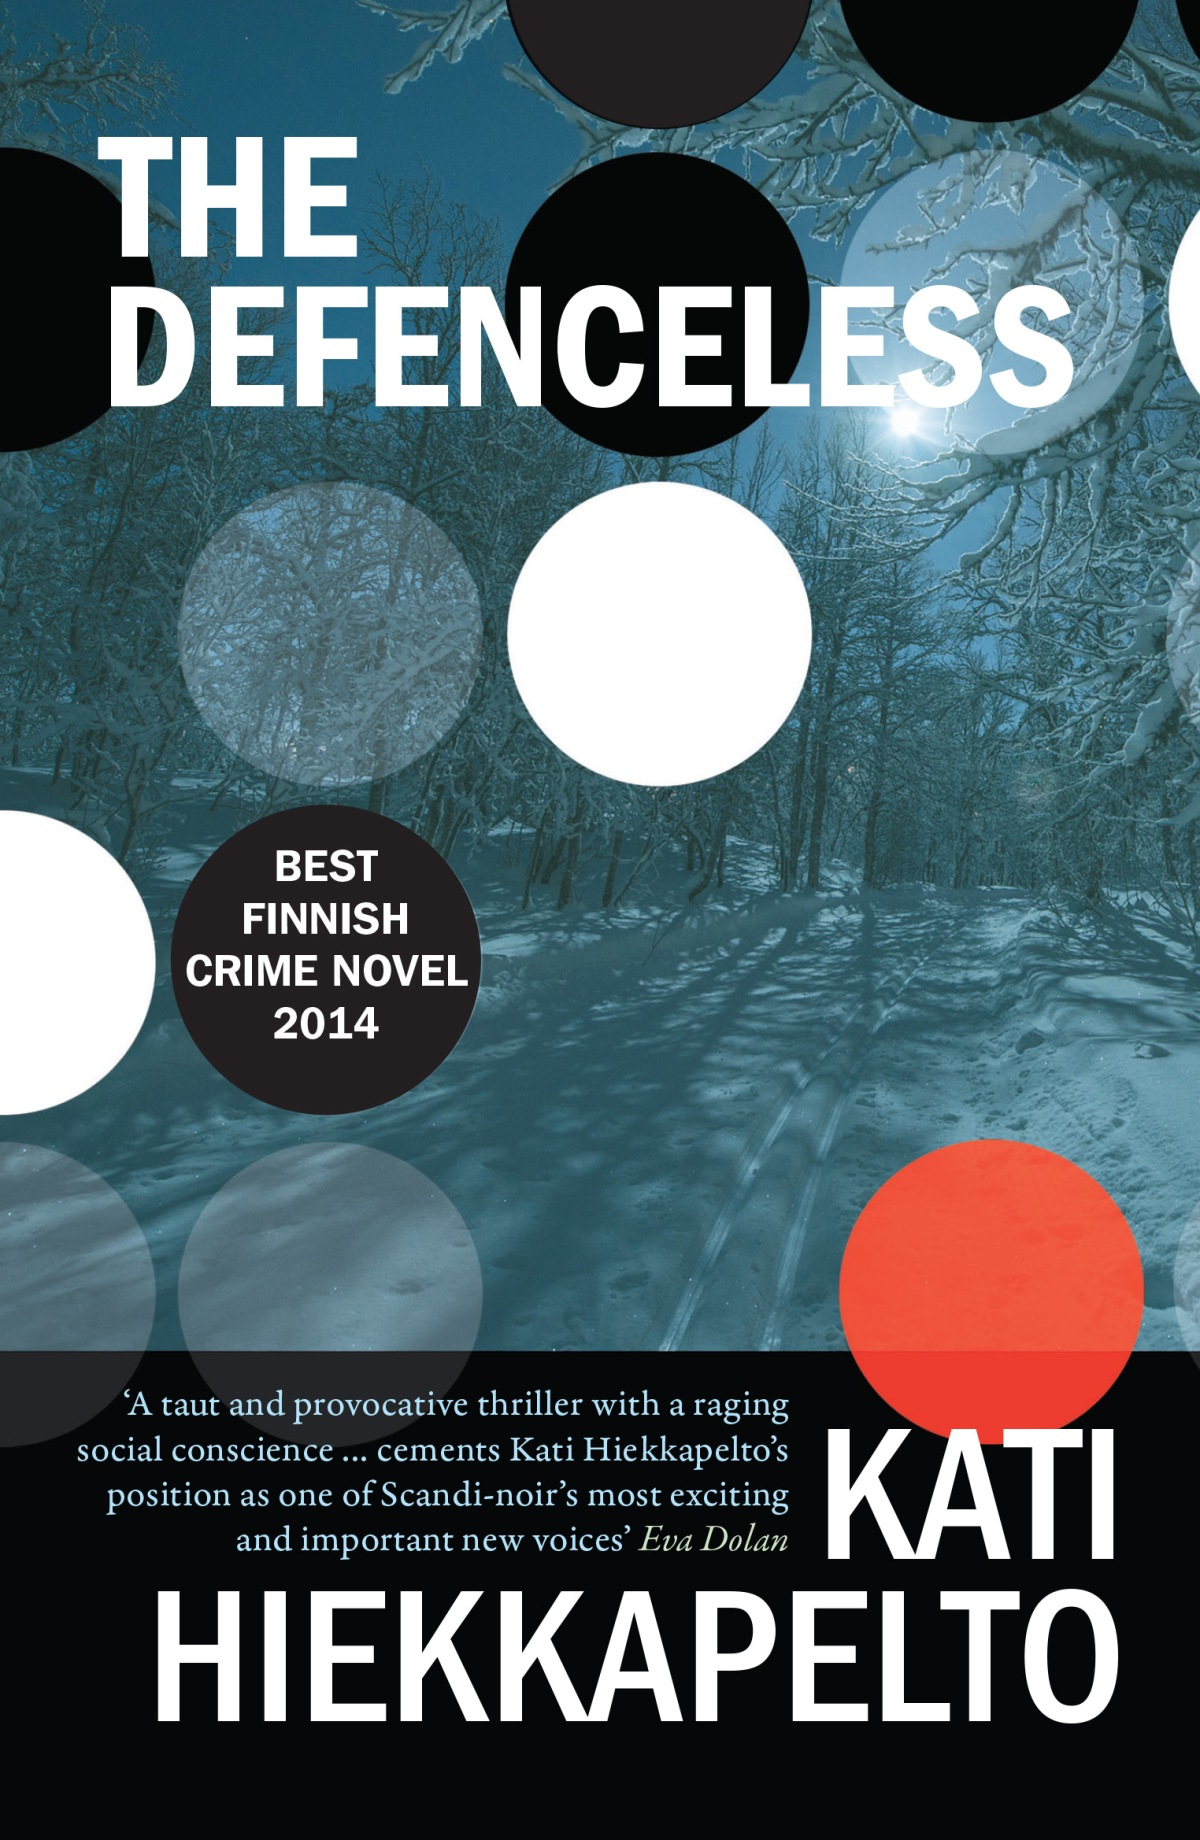 Defenceless in Finland